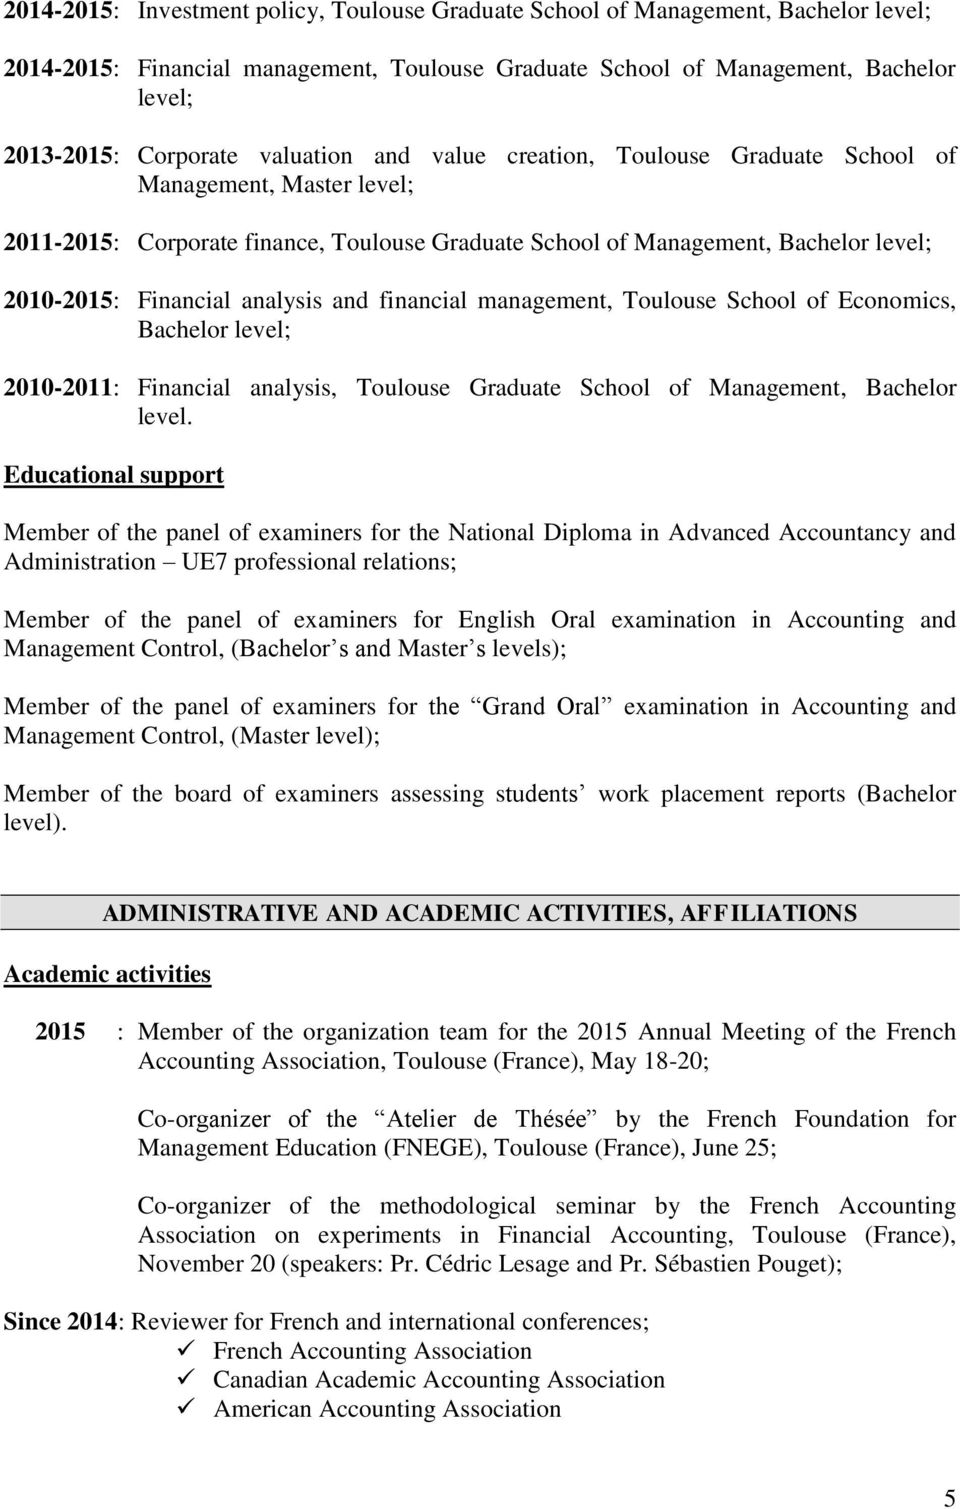 and financial management, Toulouse School of Economics, Bachelor level; 2010-2011: Financial analysis, Toulouse Graduate School of Management, Bachelor level.